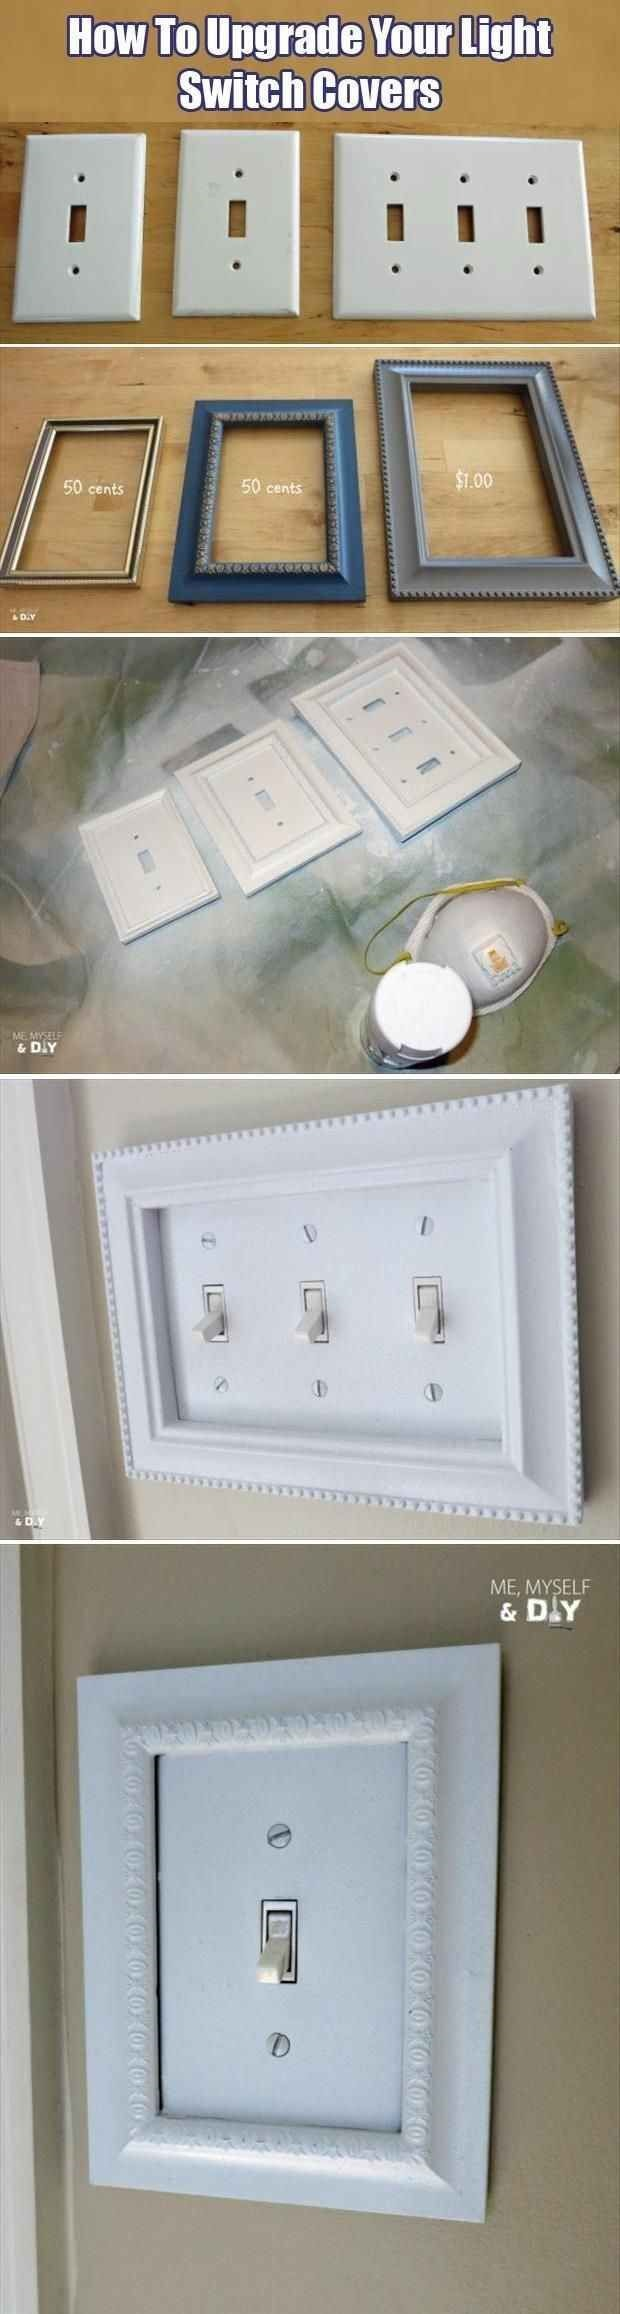 Easy Light Switch Upgrade